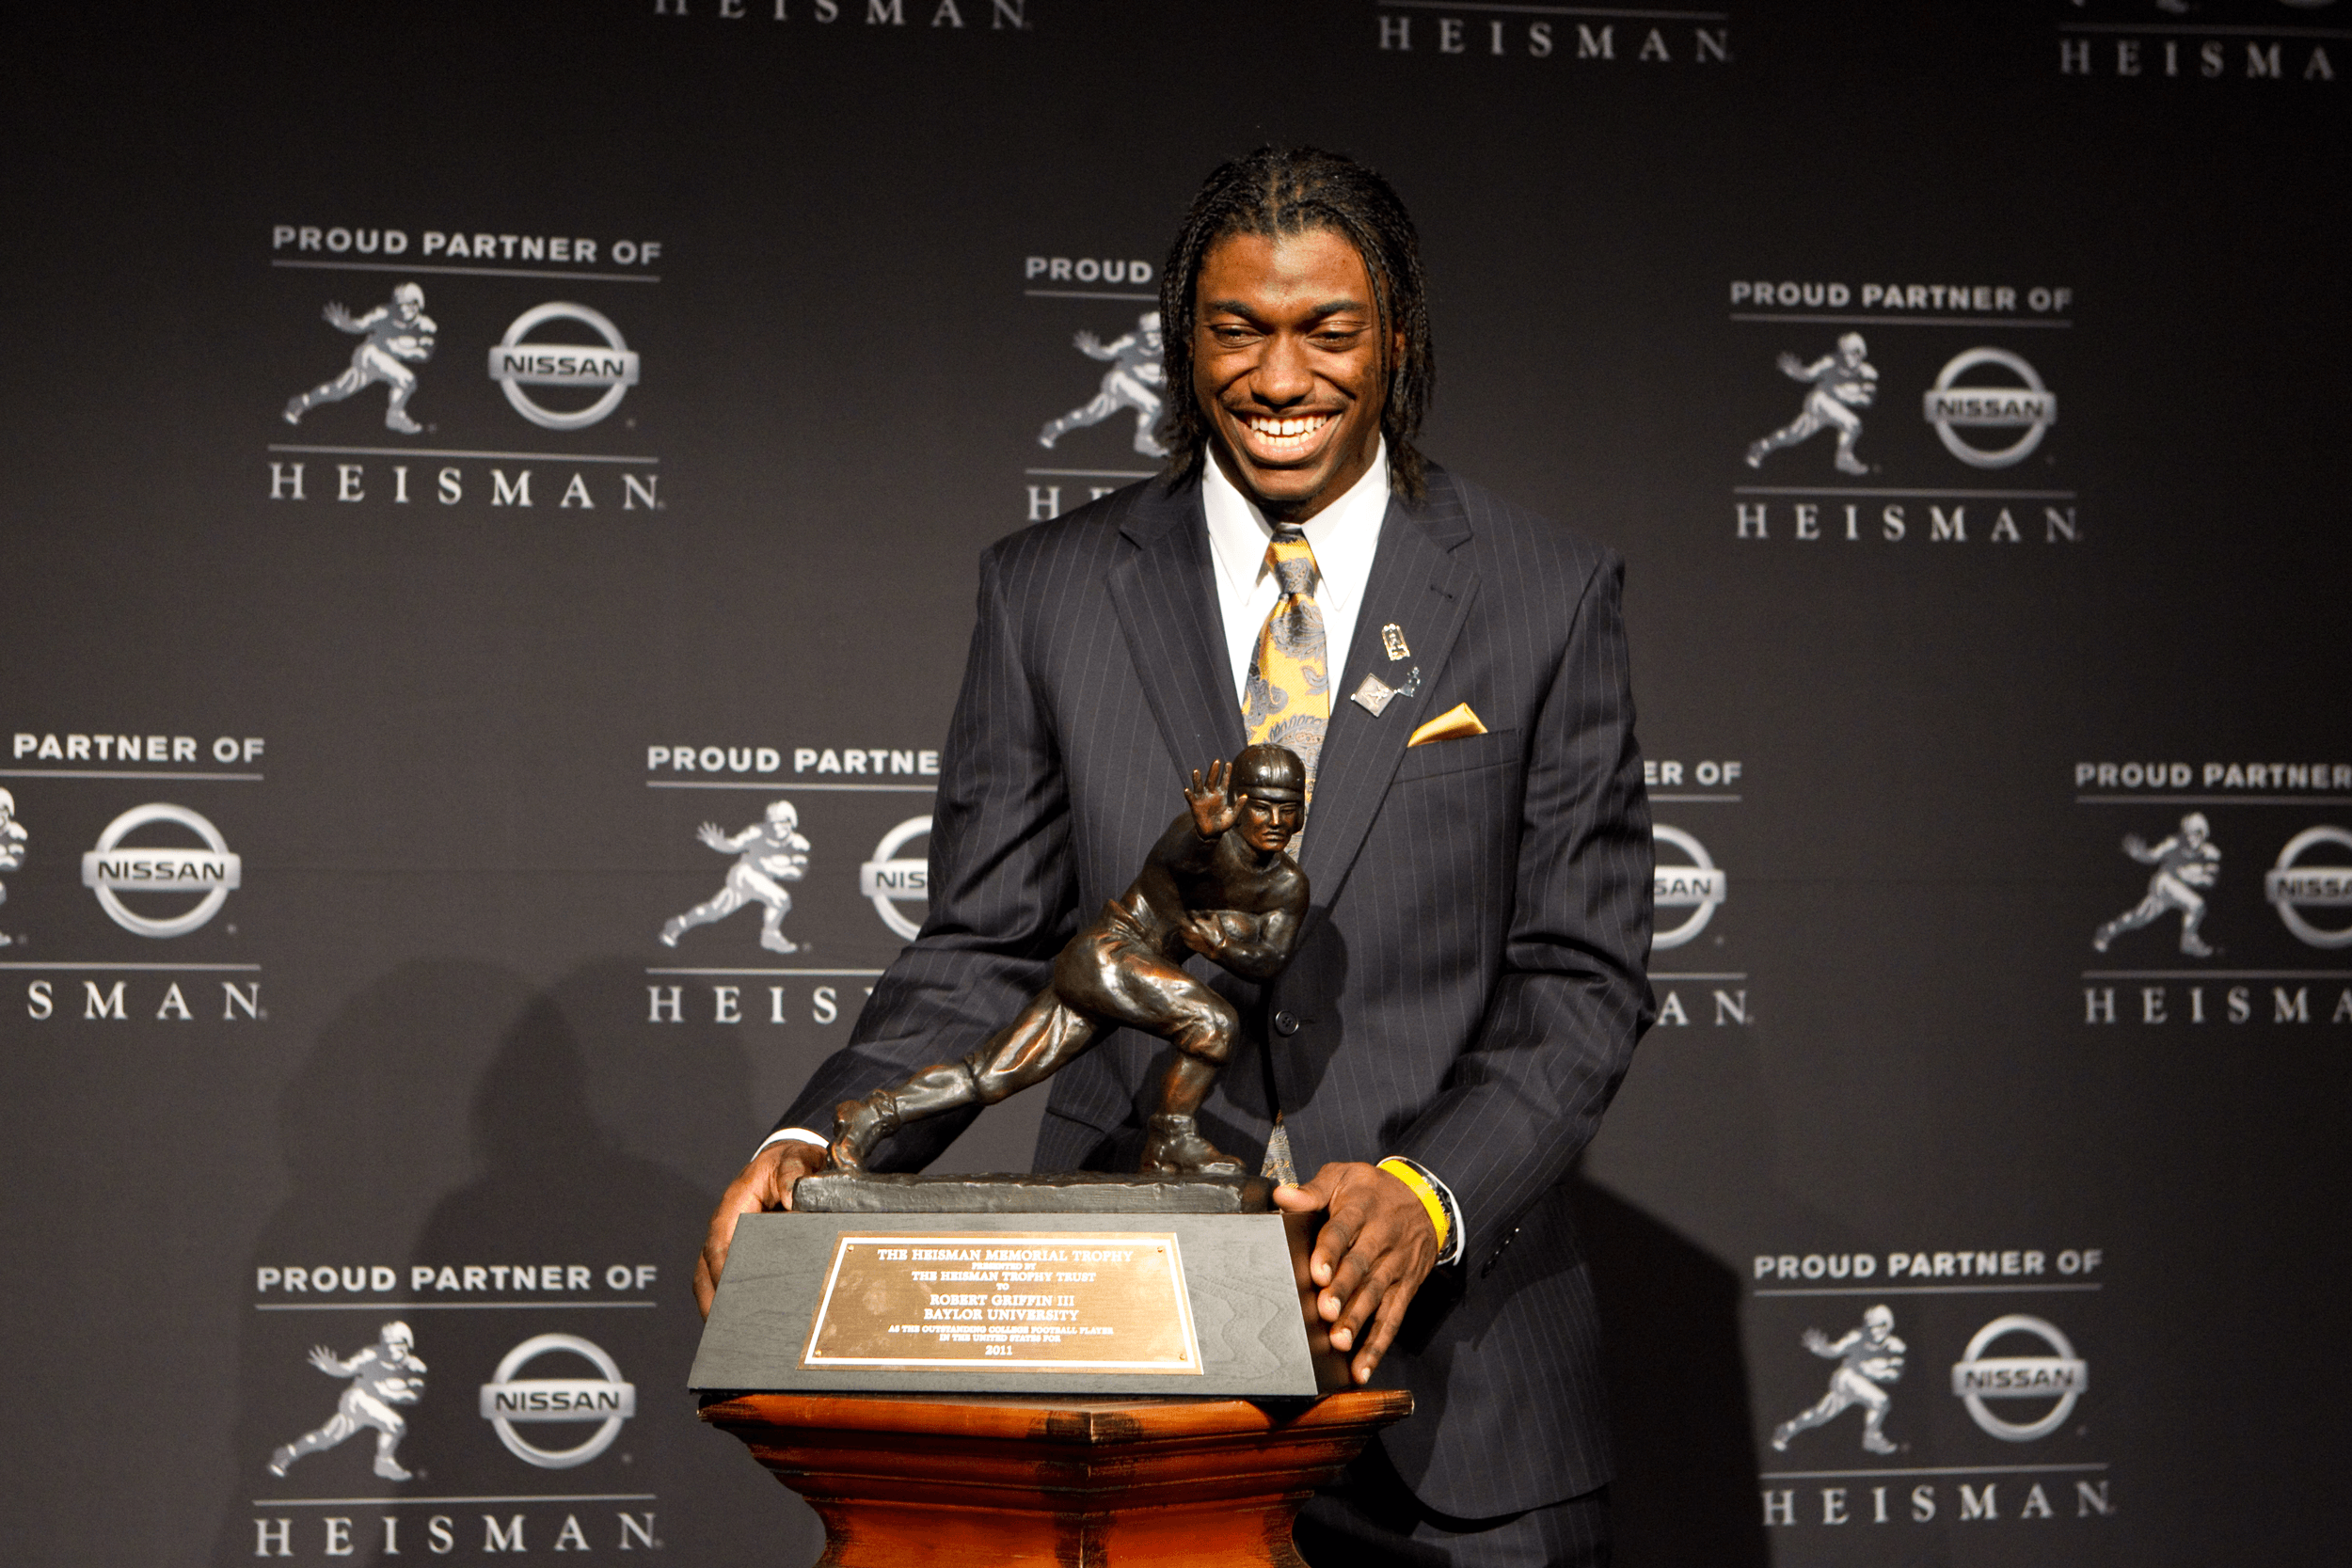 Step and Repeat Backdrop for Heisman-Trophy-Ceremony manufactured by National Flag & Display, Manufacturers of Banners and Flags in NYC since 1935.